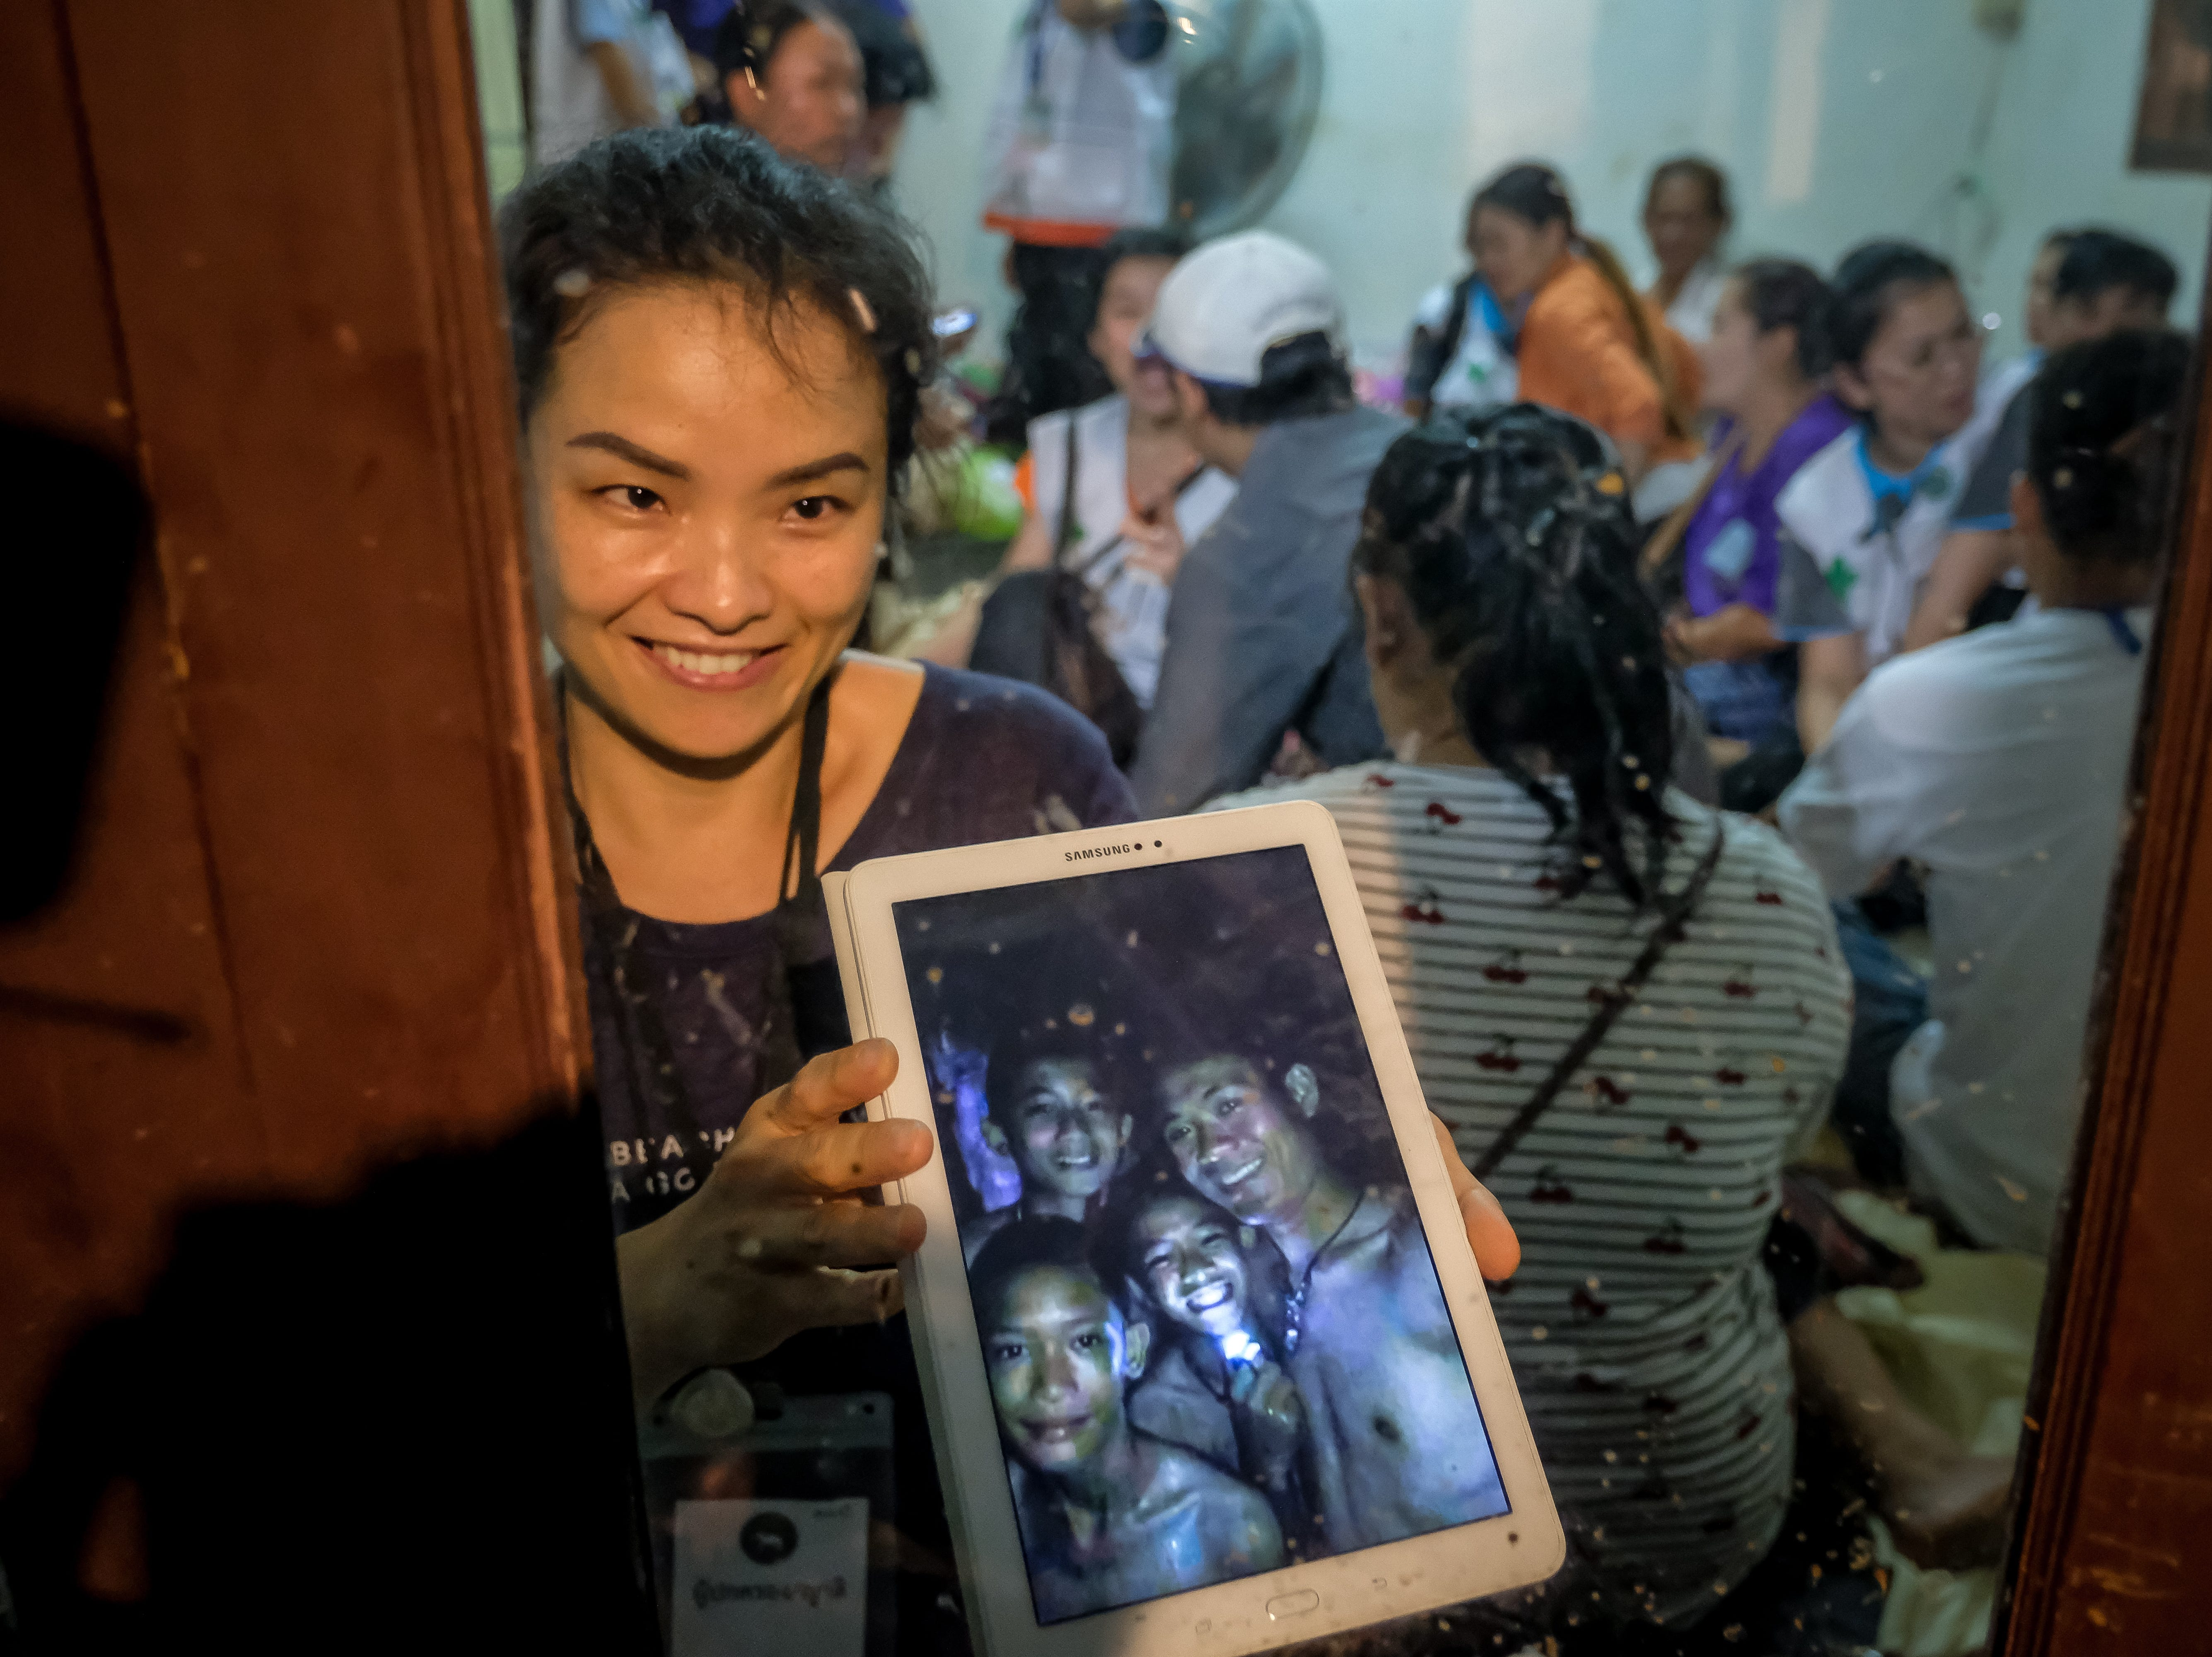 July 2, 2018: Relatives show photos of some of the 12 boys and their soccer coach who were found alive in the cave where they've been missing for over a week after monsoon rains blocked the main entrance in Chiang Rai, Thailand. Chiang Rai governor Narongsak Osatanakorn had announced that the boys, aged 11 to 16, and their 25-year-old coach were being rescued from Tham Luang Nang Non cave after they were discovered by naval special forces and the challenge now will be to extract the party safely.